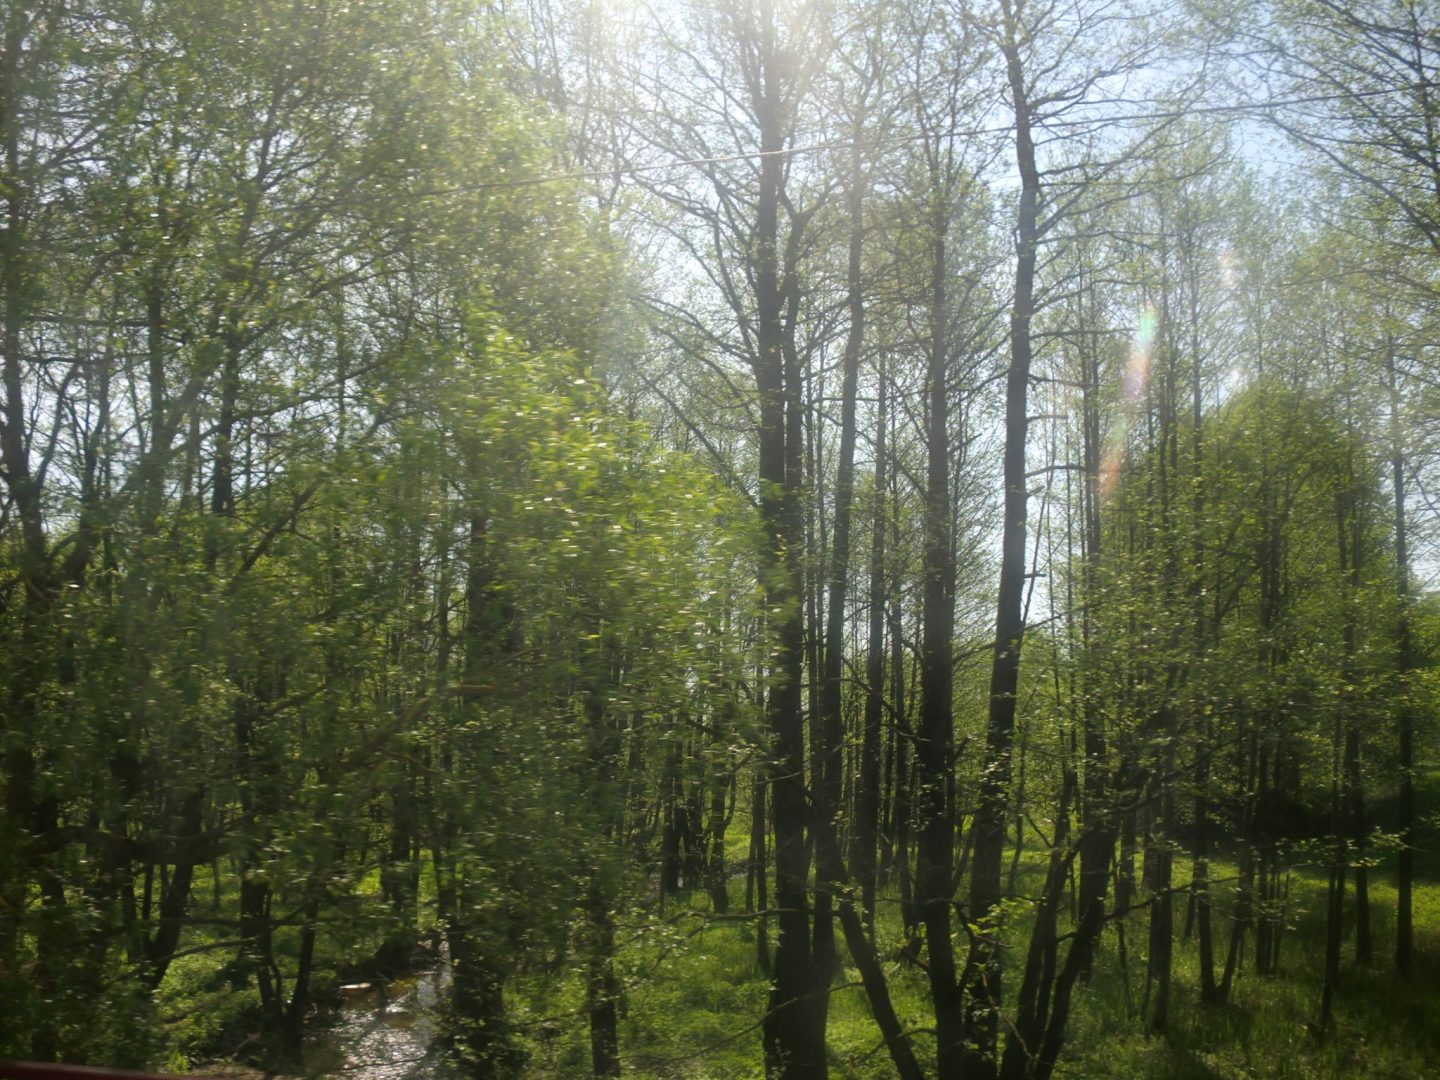 From Vilnius to Minsk by bus: 1 cool trip you should do - A tree in a forest - Mombacho